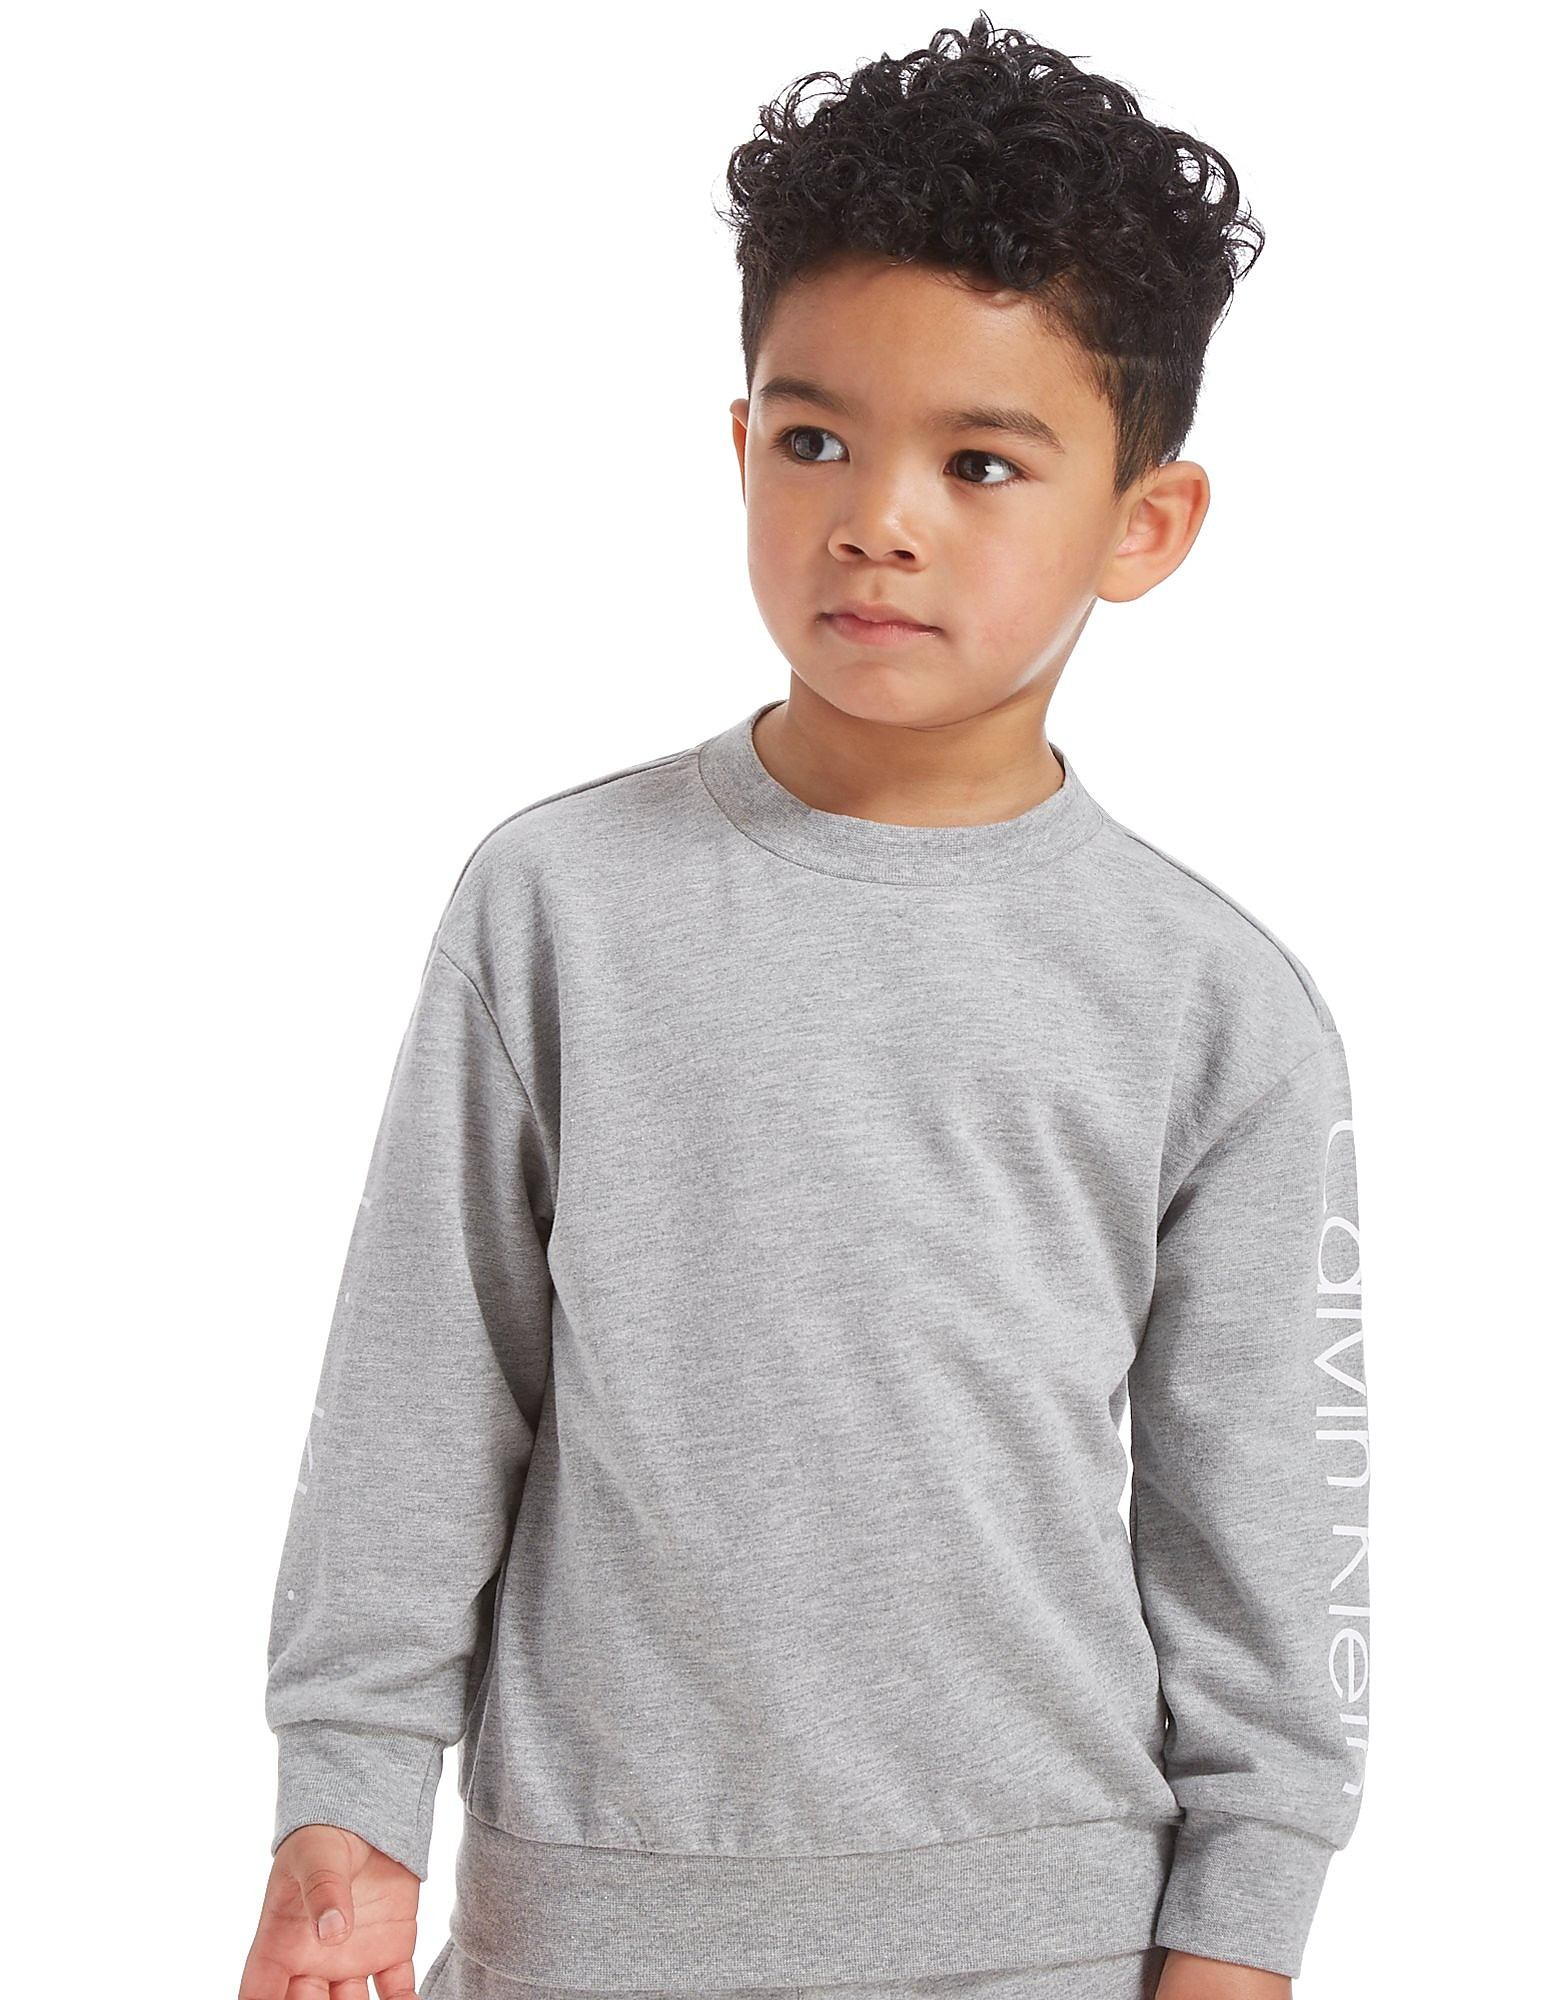 Calvin Klein Long Sleeve Logo Crew Sweatshirt Children